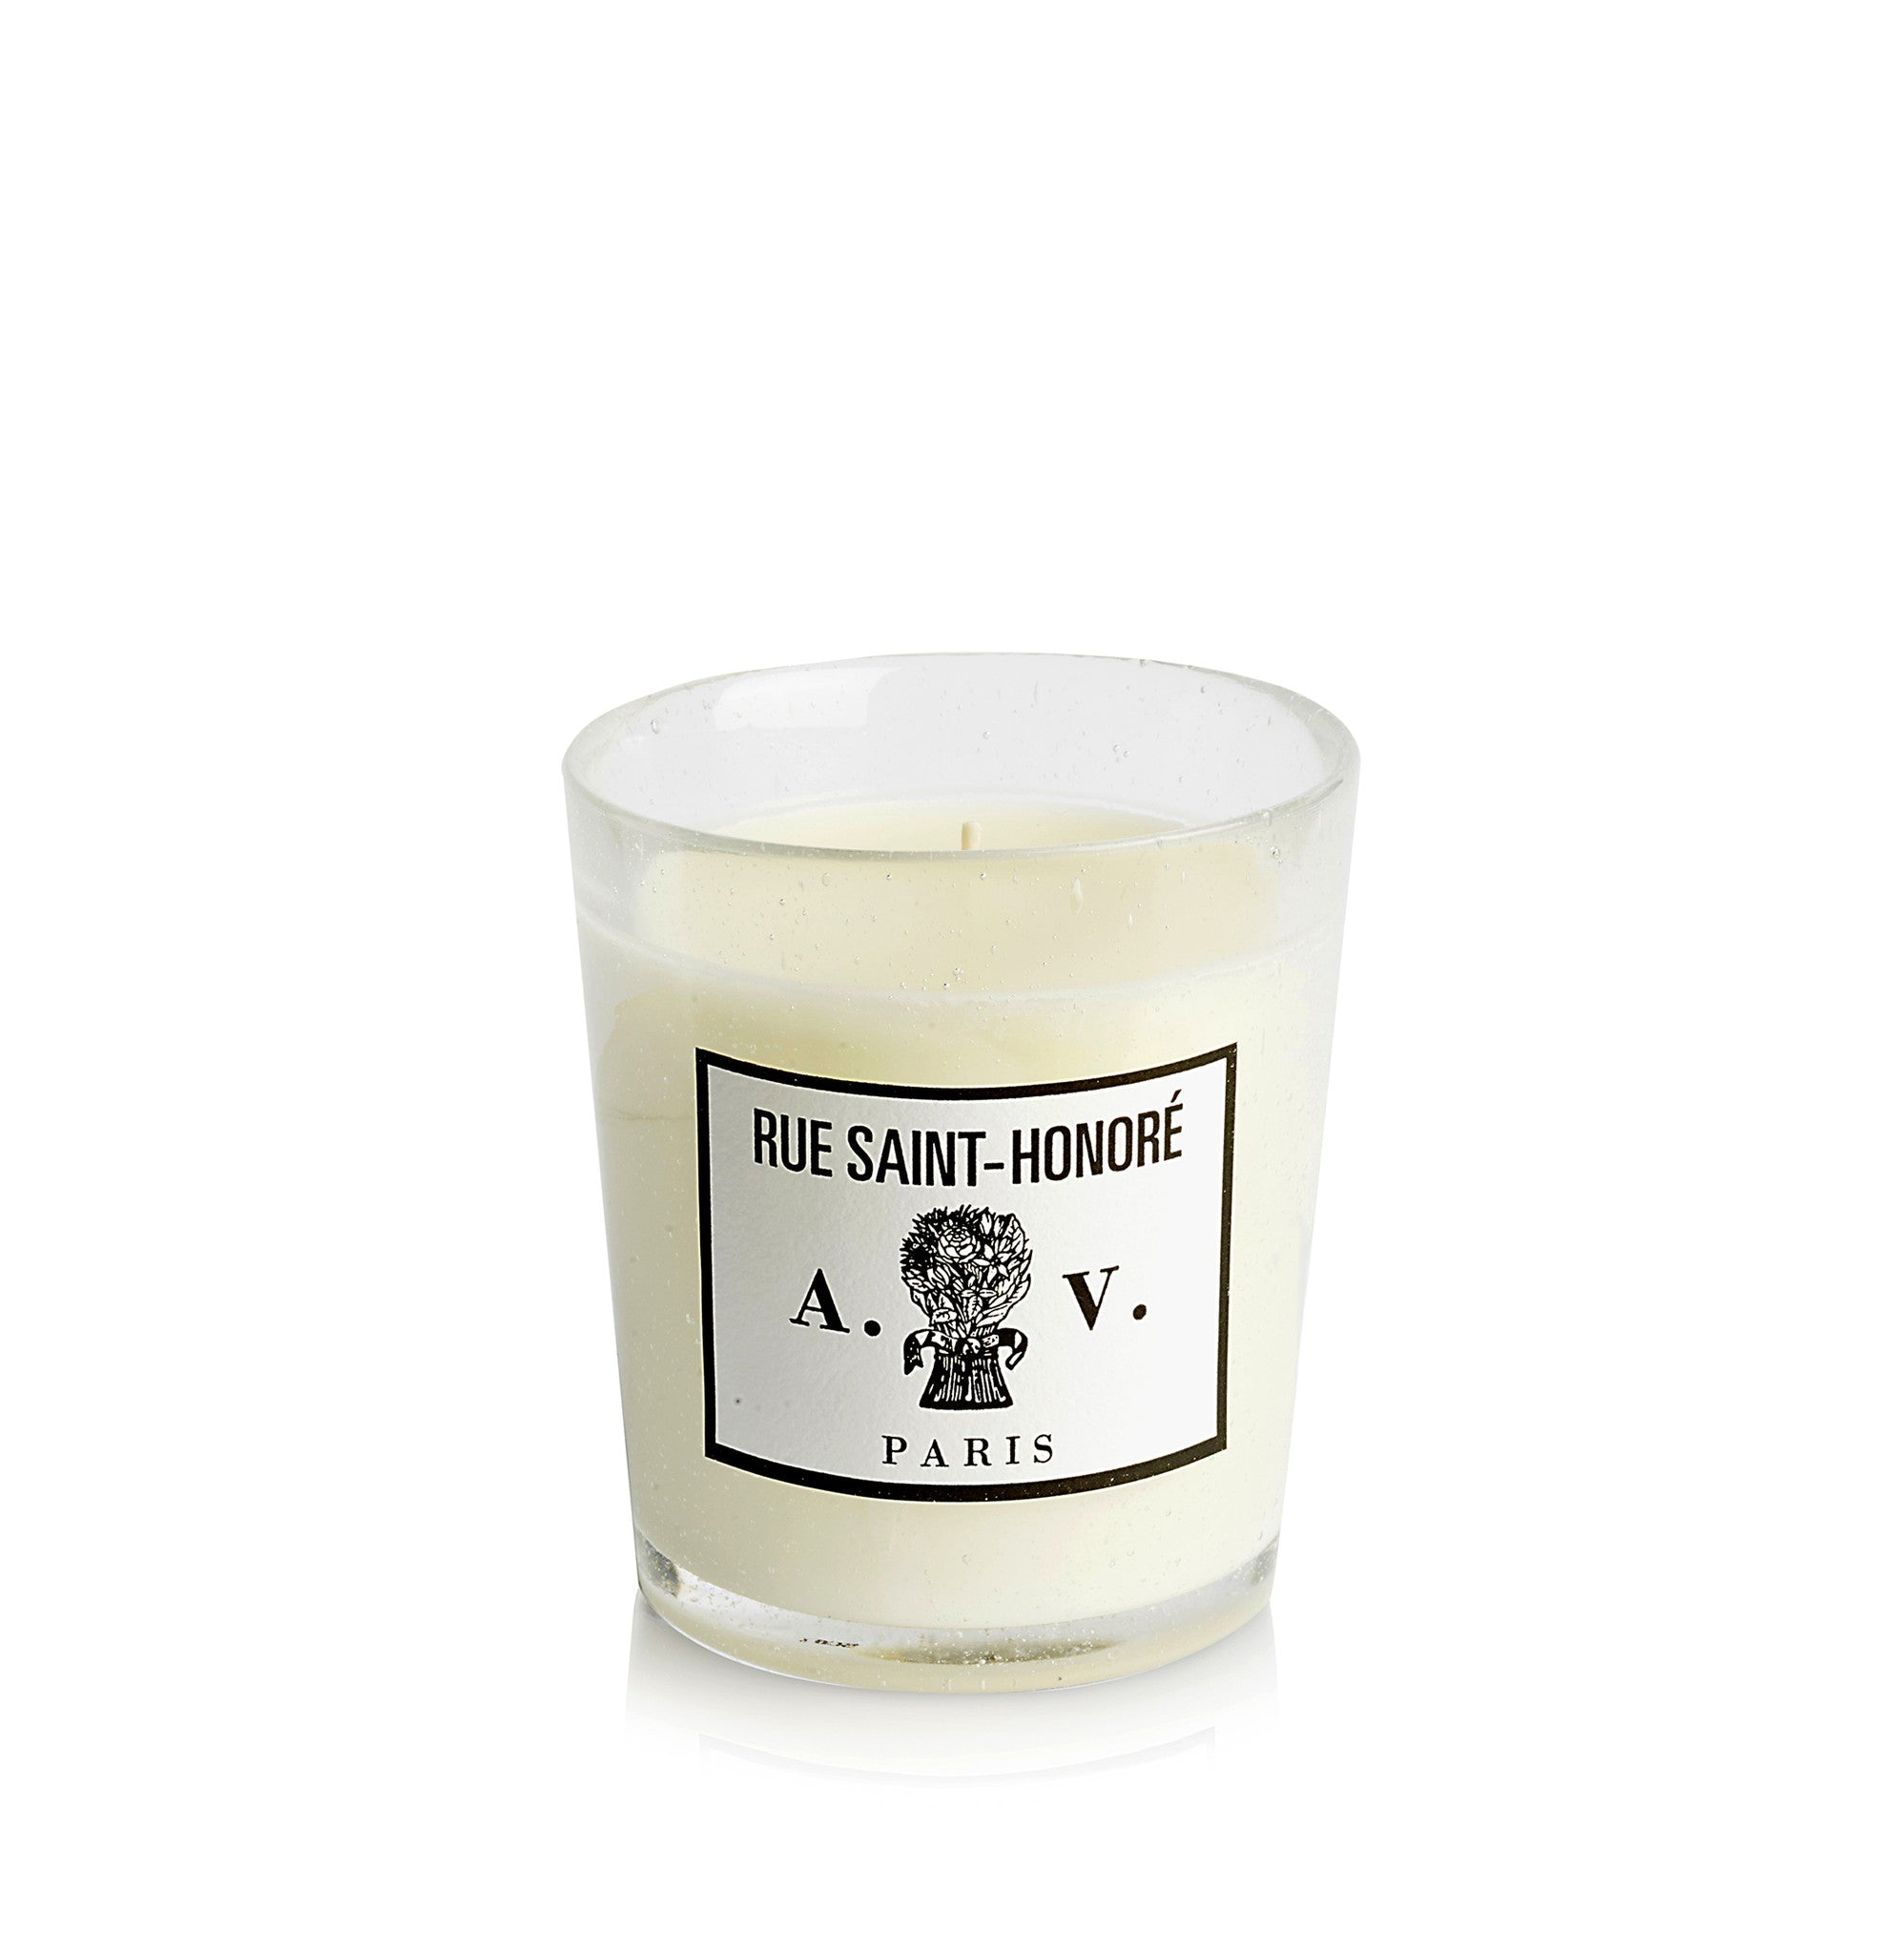 Rue Saint Honoré Candle by Astier de Villatte